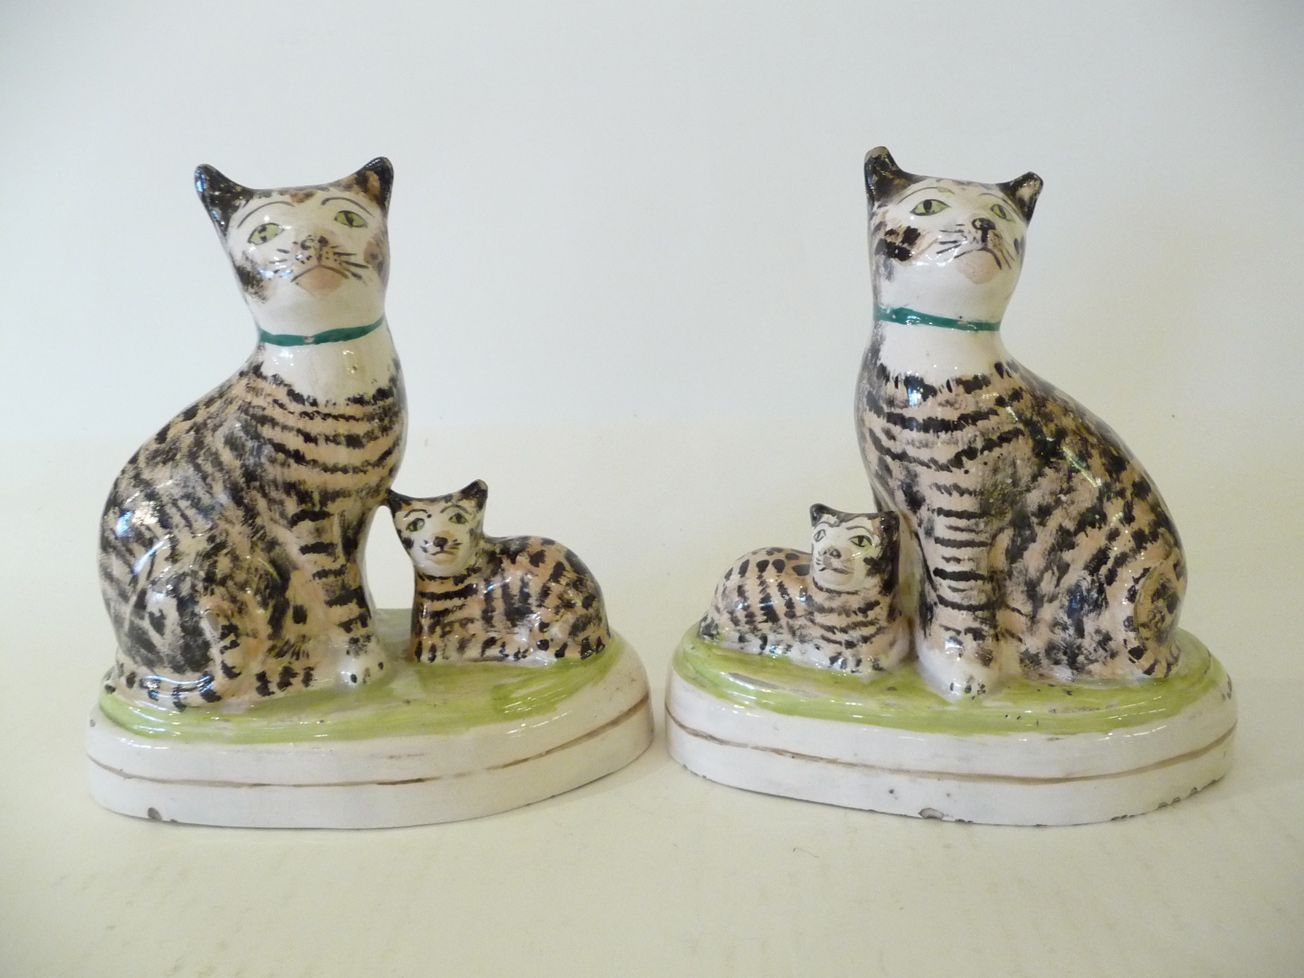 Seated Cats and Kittens. Black, Tan & White Striped Tabby